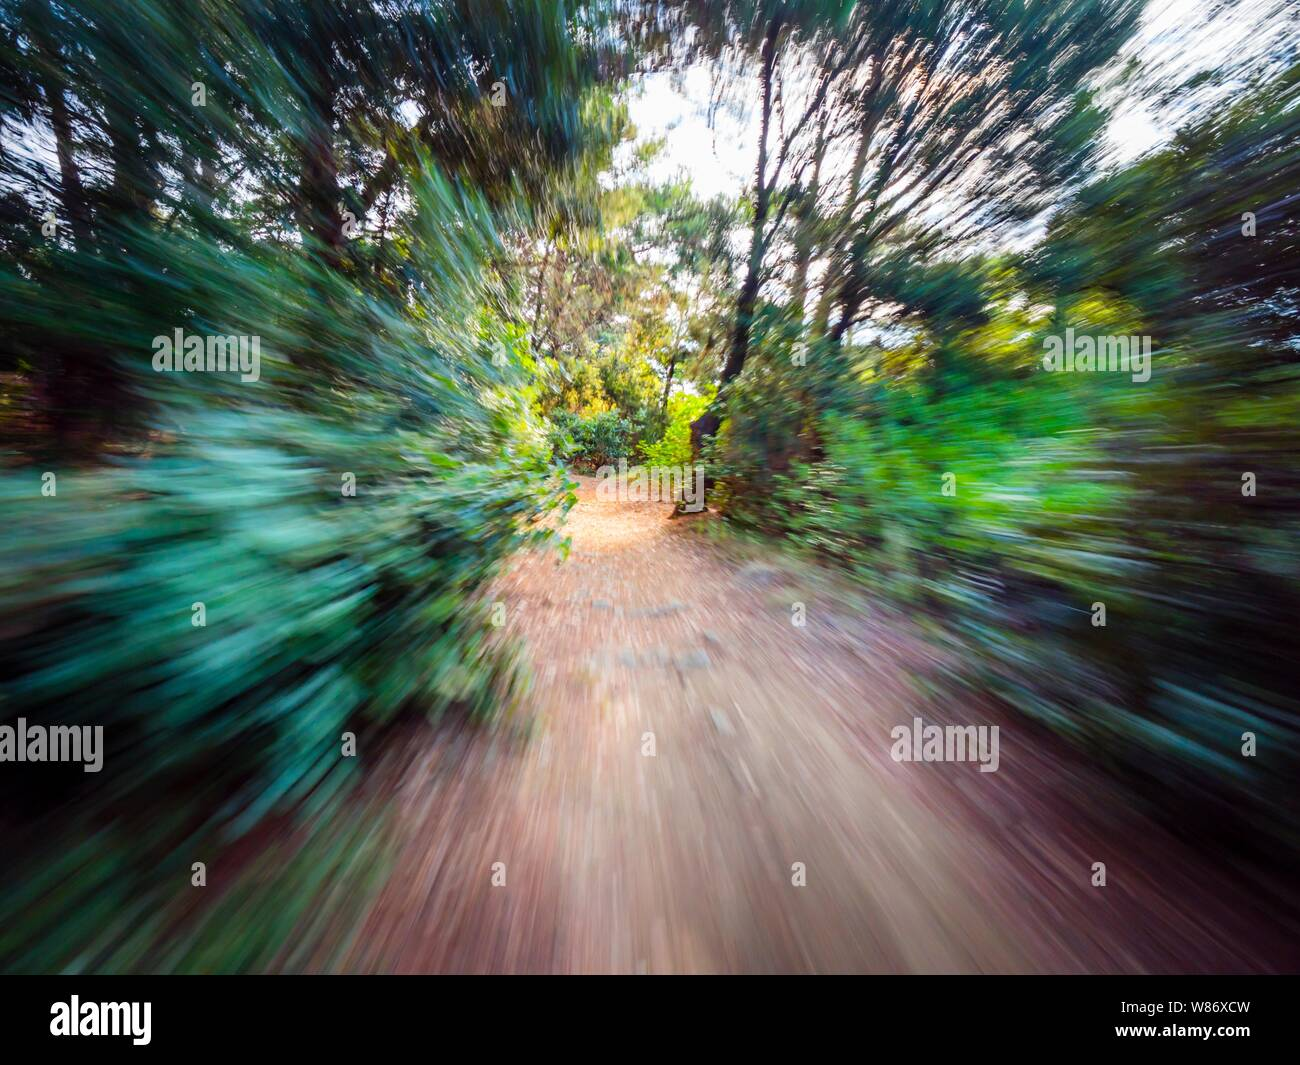 Green forest countryside path pathway natural environment speeding through dense trees Stock Photo